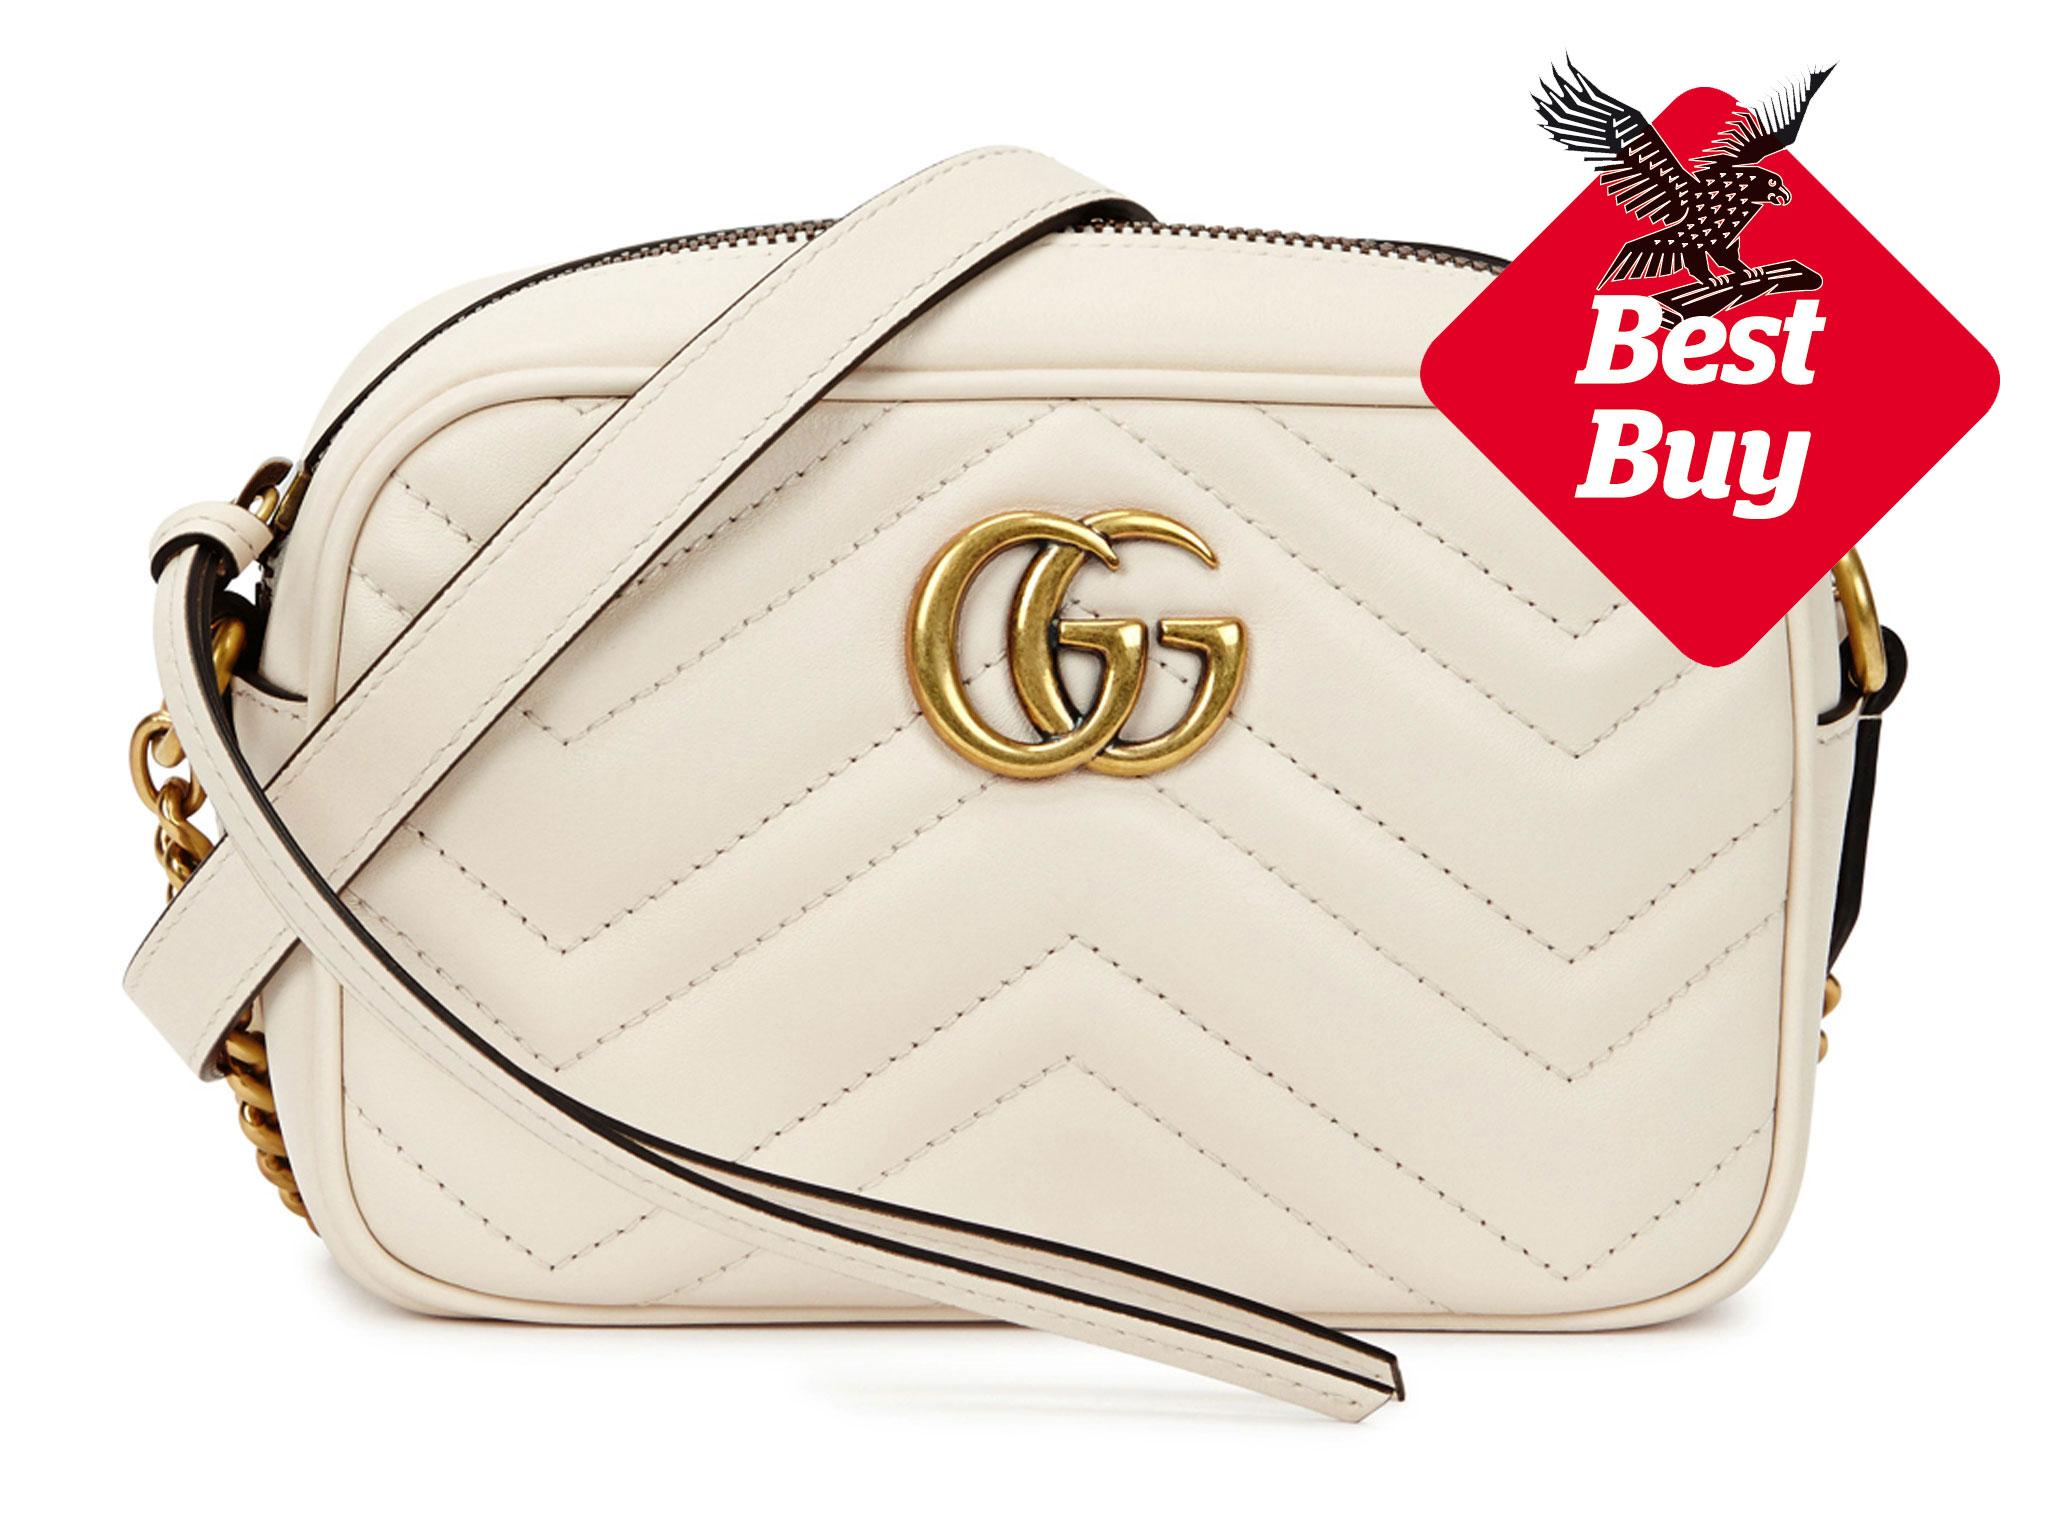 8c26145db86 Gucci Marmont Mini Shoulder Bag  £640, Harvey Nichols